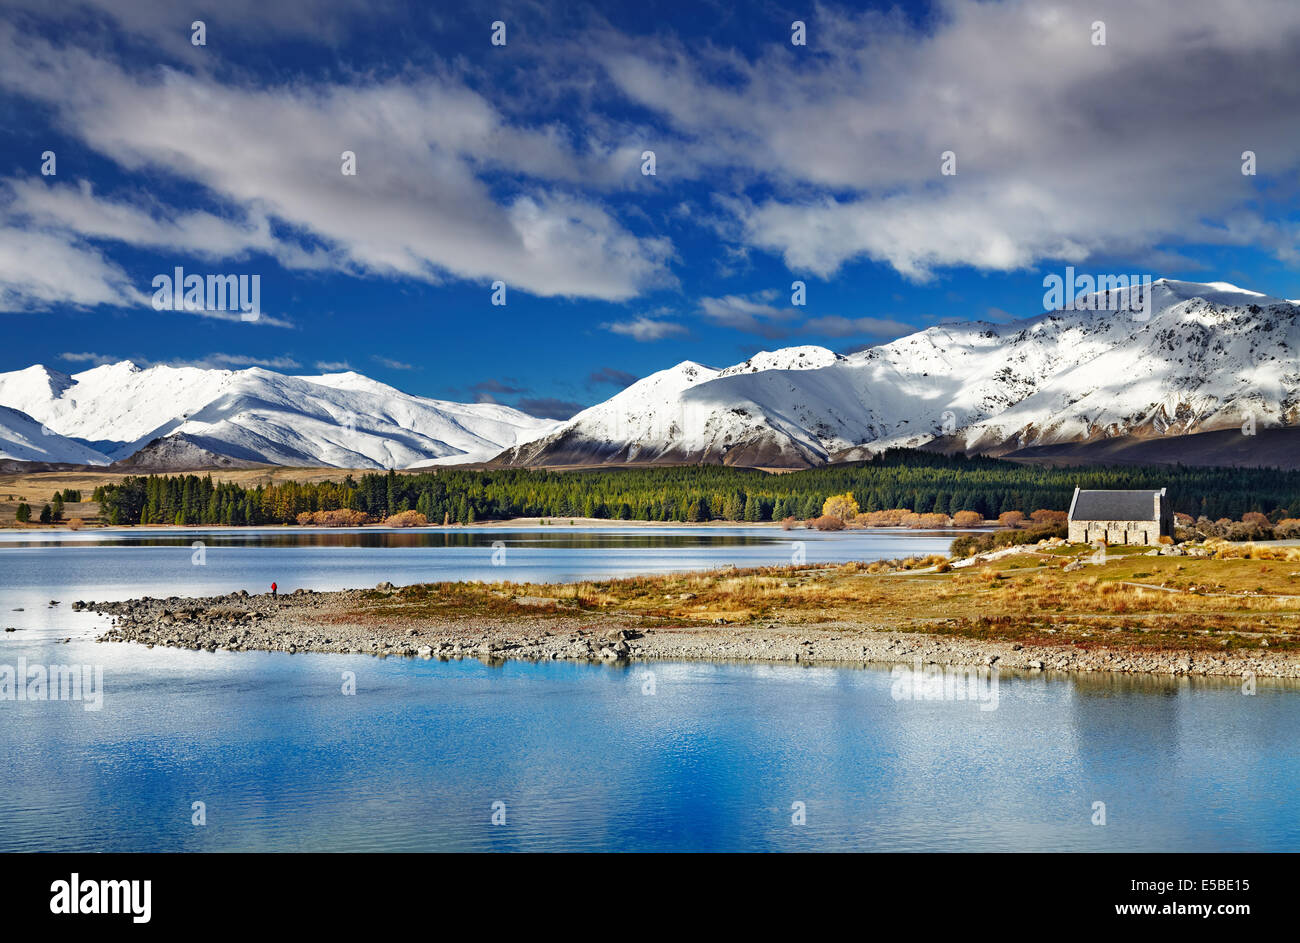 Lake Tekapo and Church of the Good Shepherd, New Zealand - Stock Image